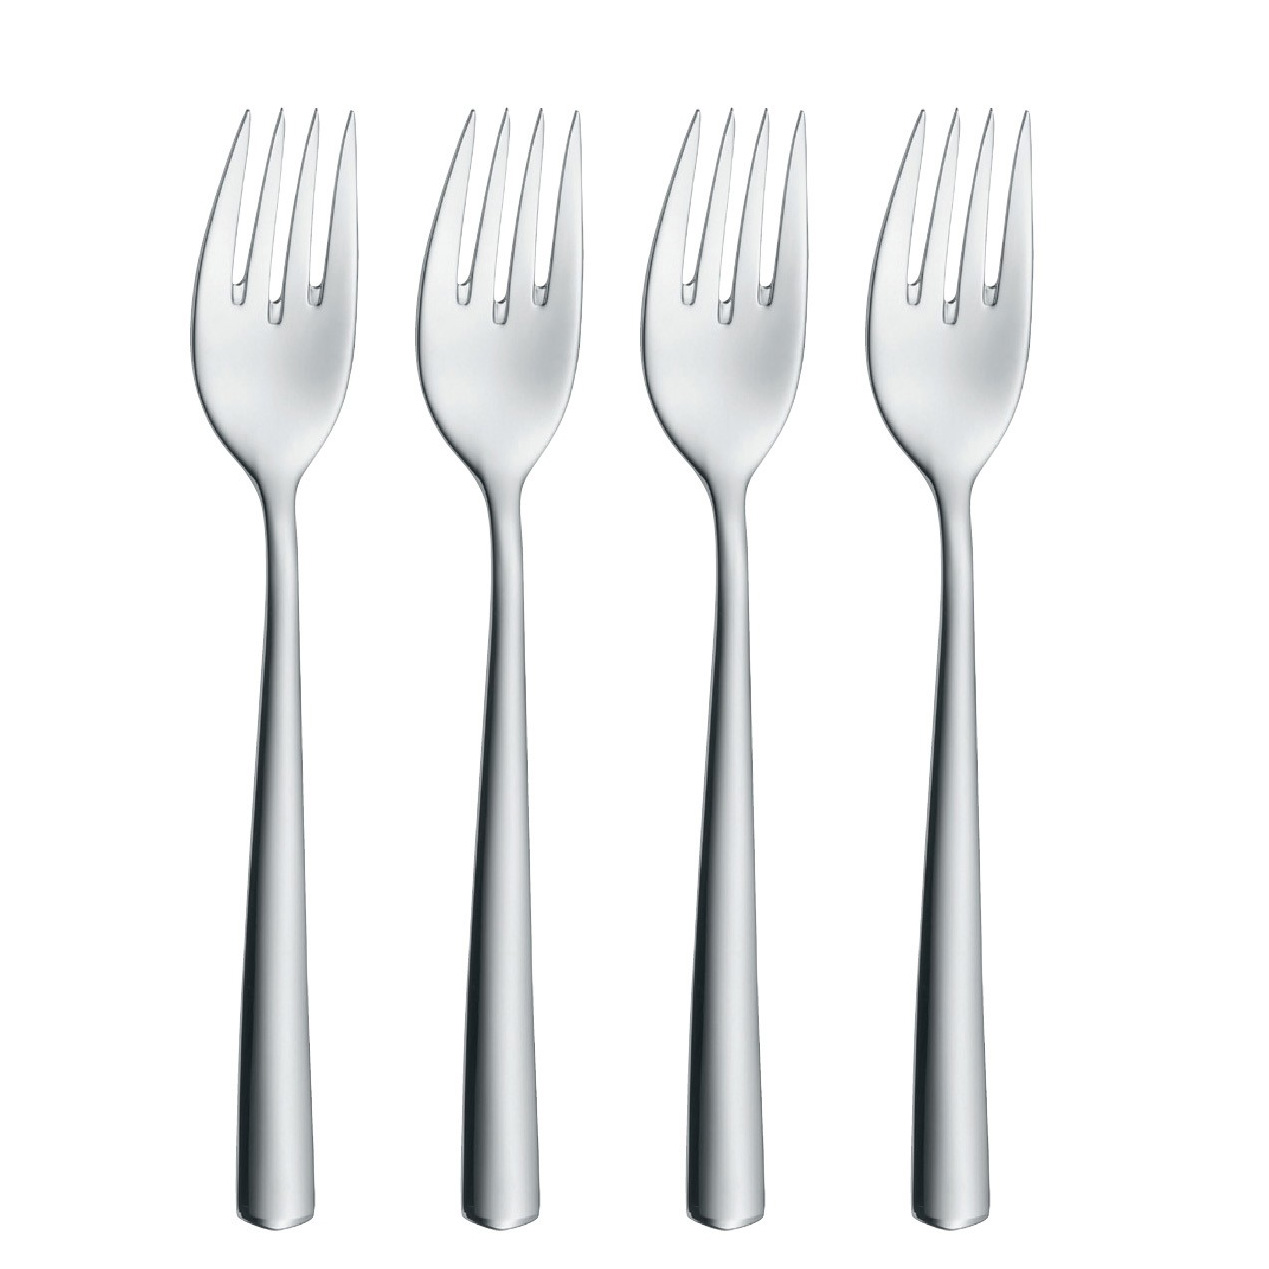 wmf bistro 4 salad forks. Black Bedroom Furniture Sets. Home Design Ideas